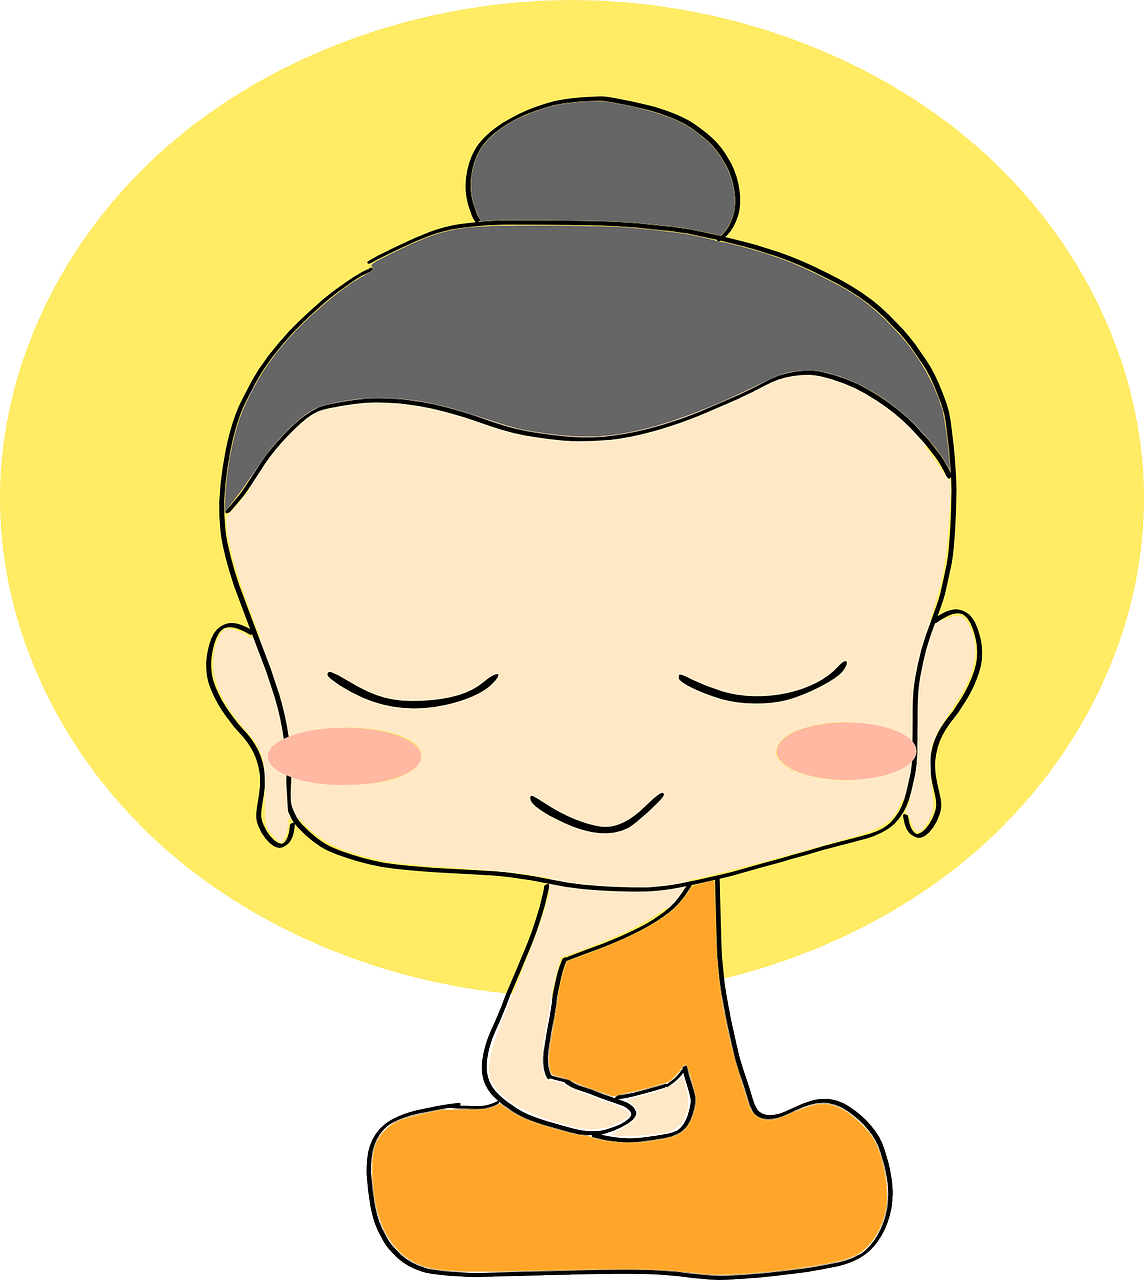 Worry clipart menopause. What is mindfulness renaissance